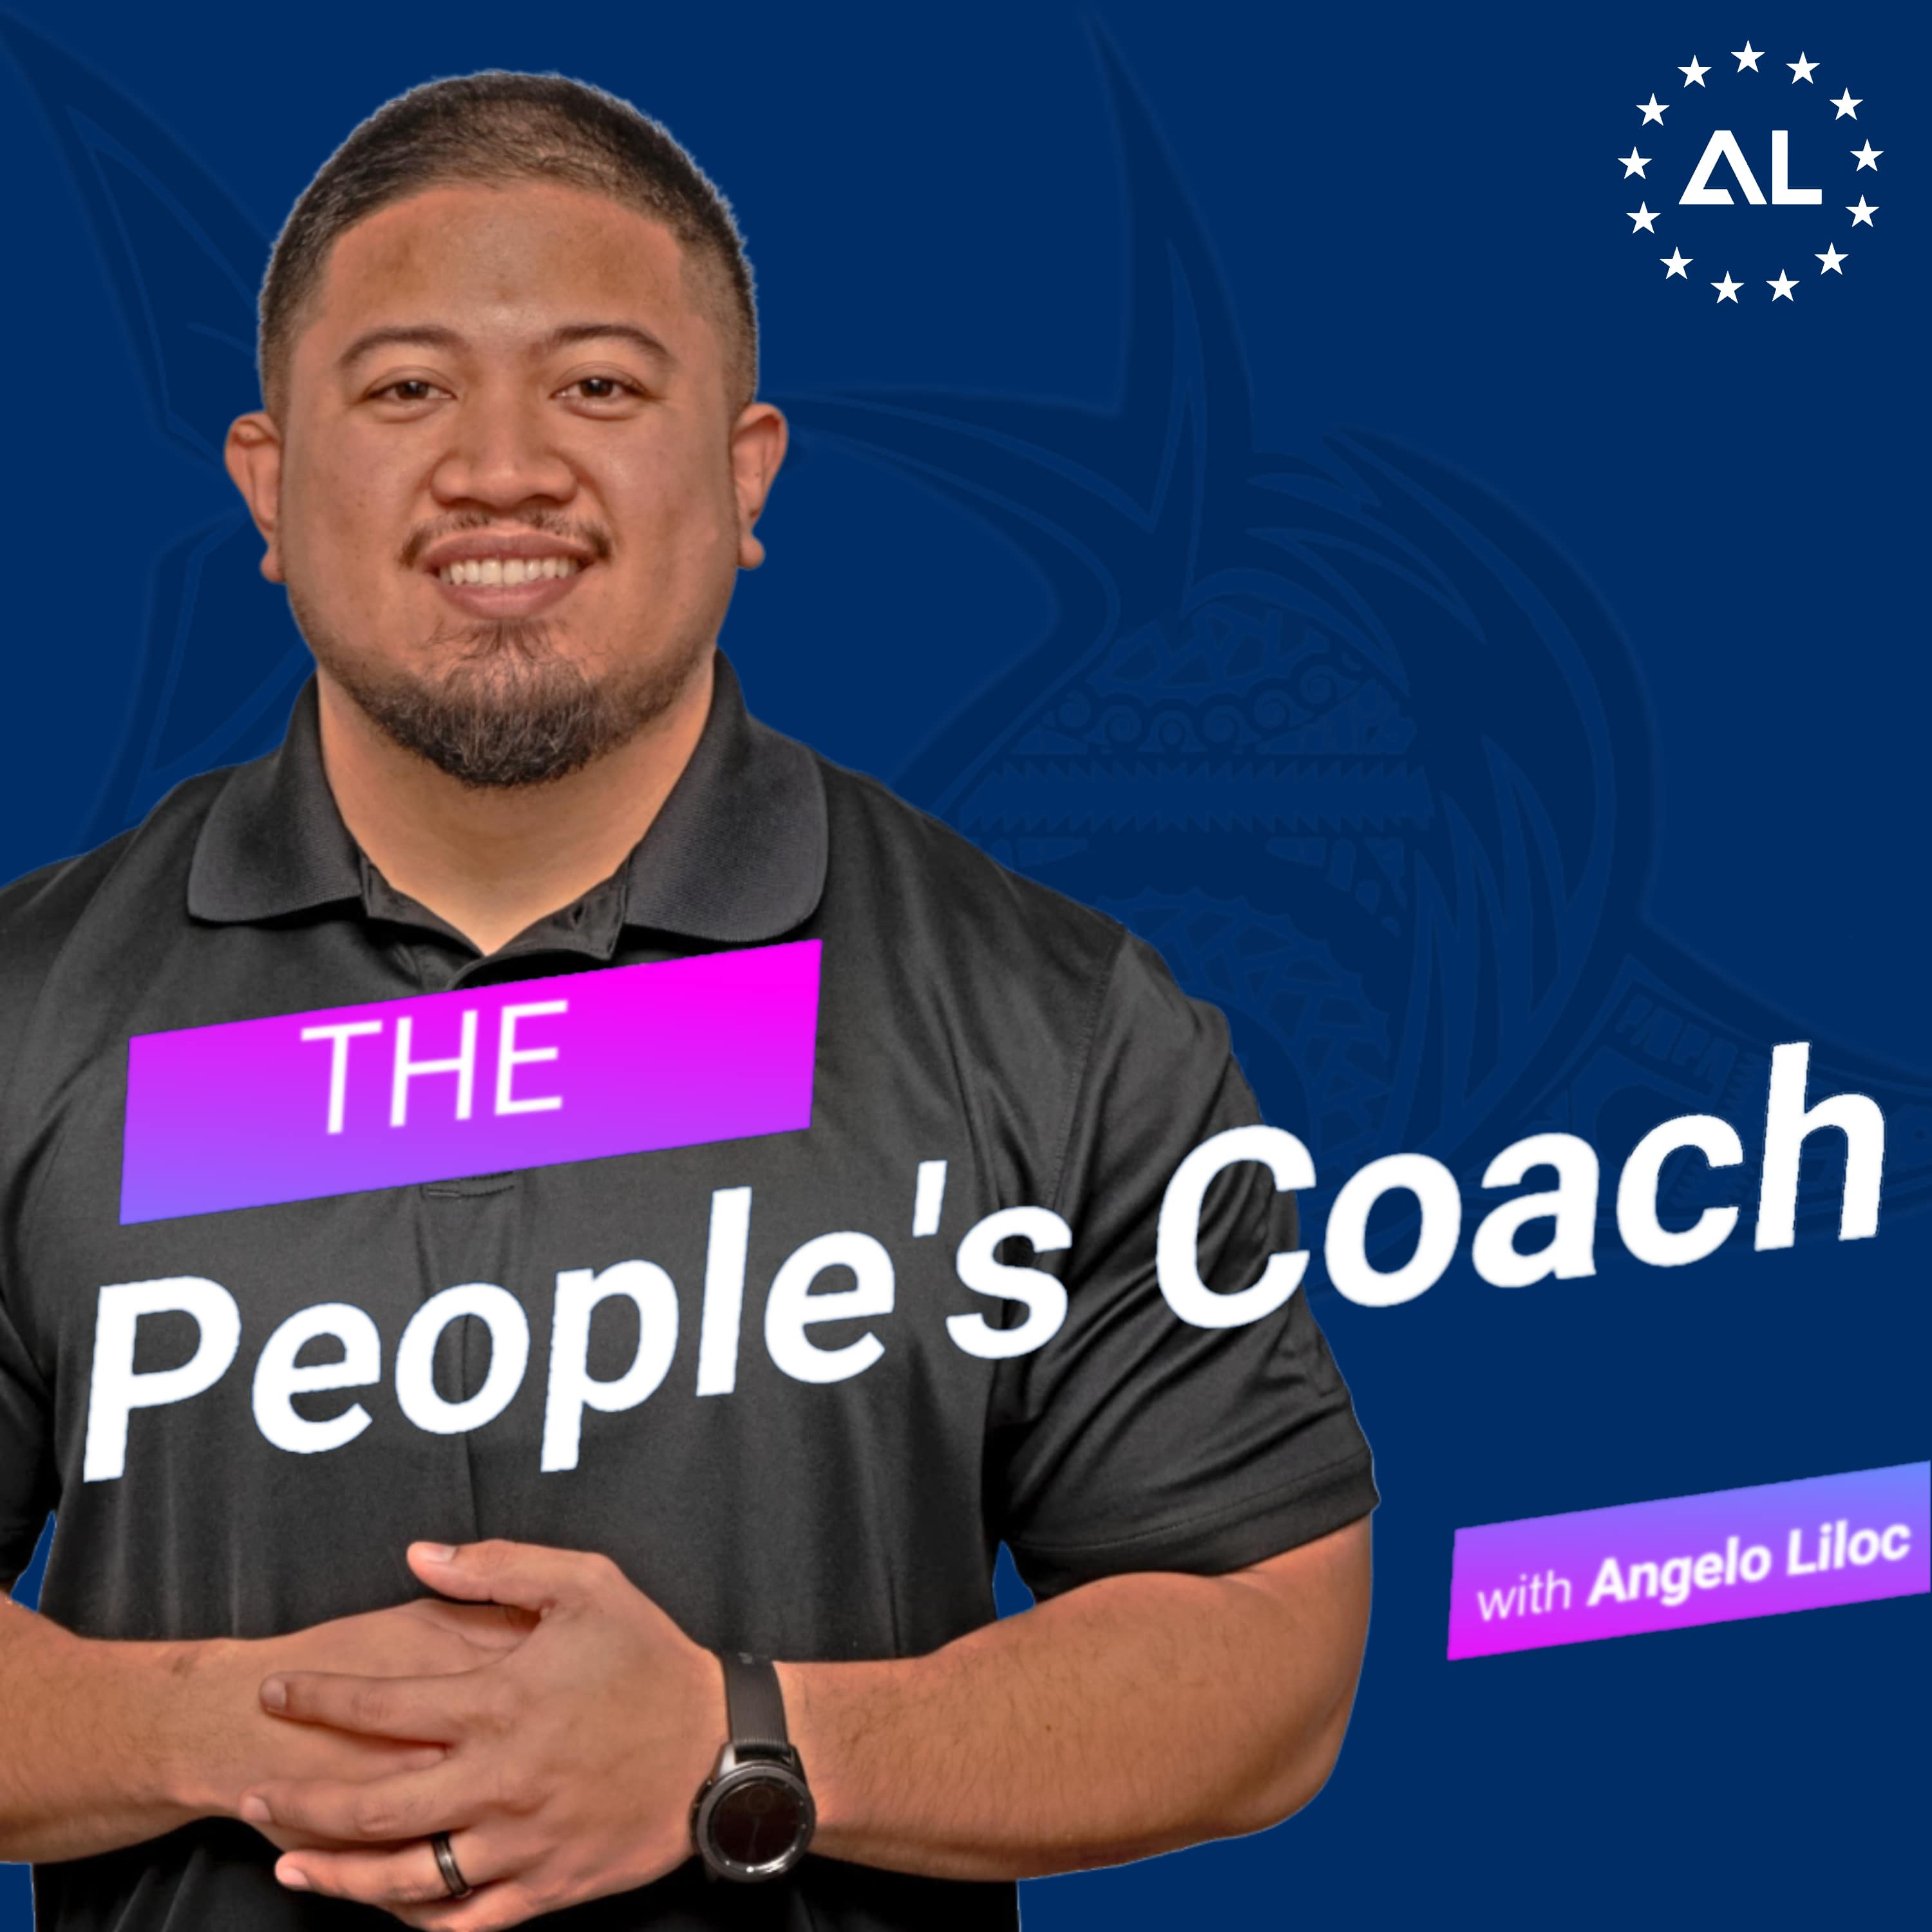 Artwork for podcast The People's Coach